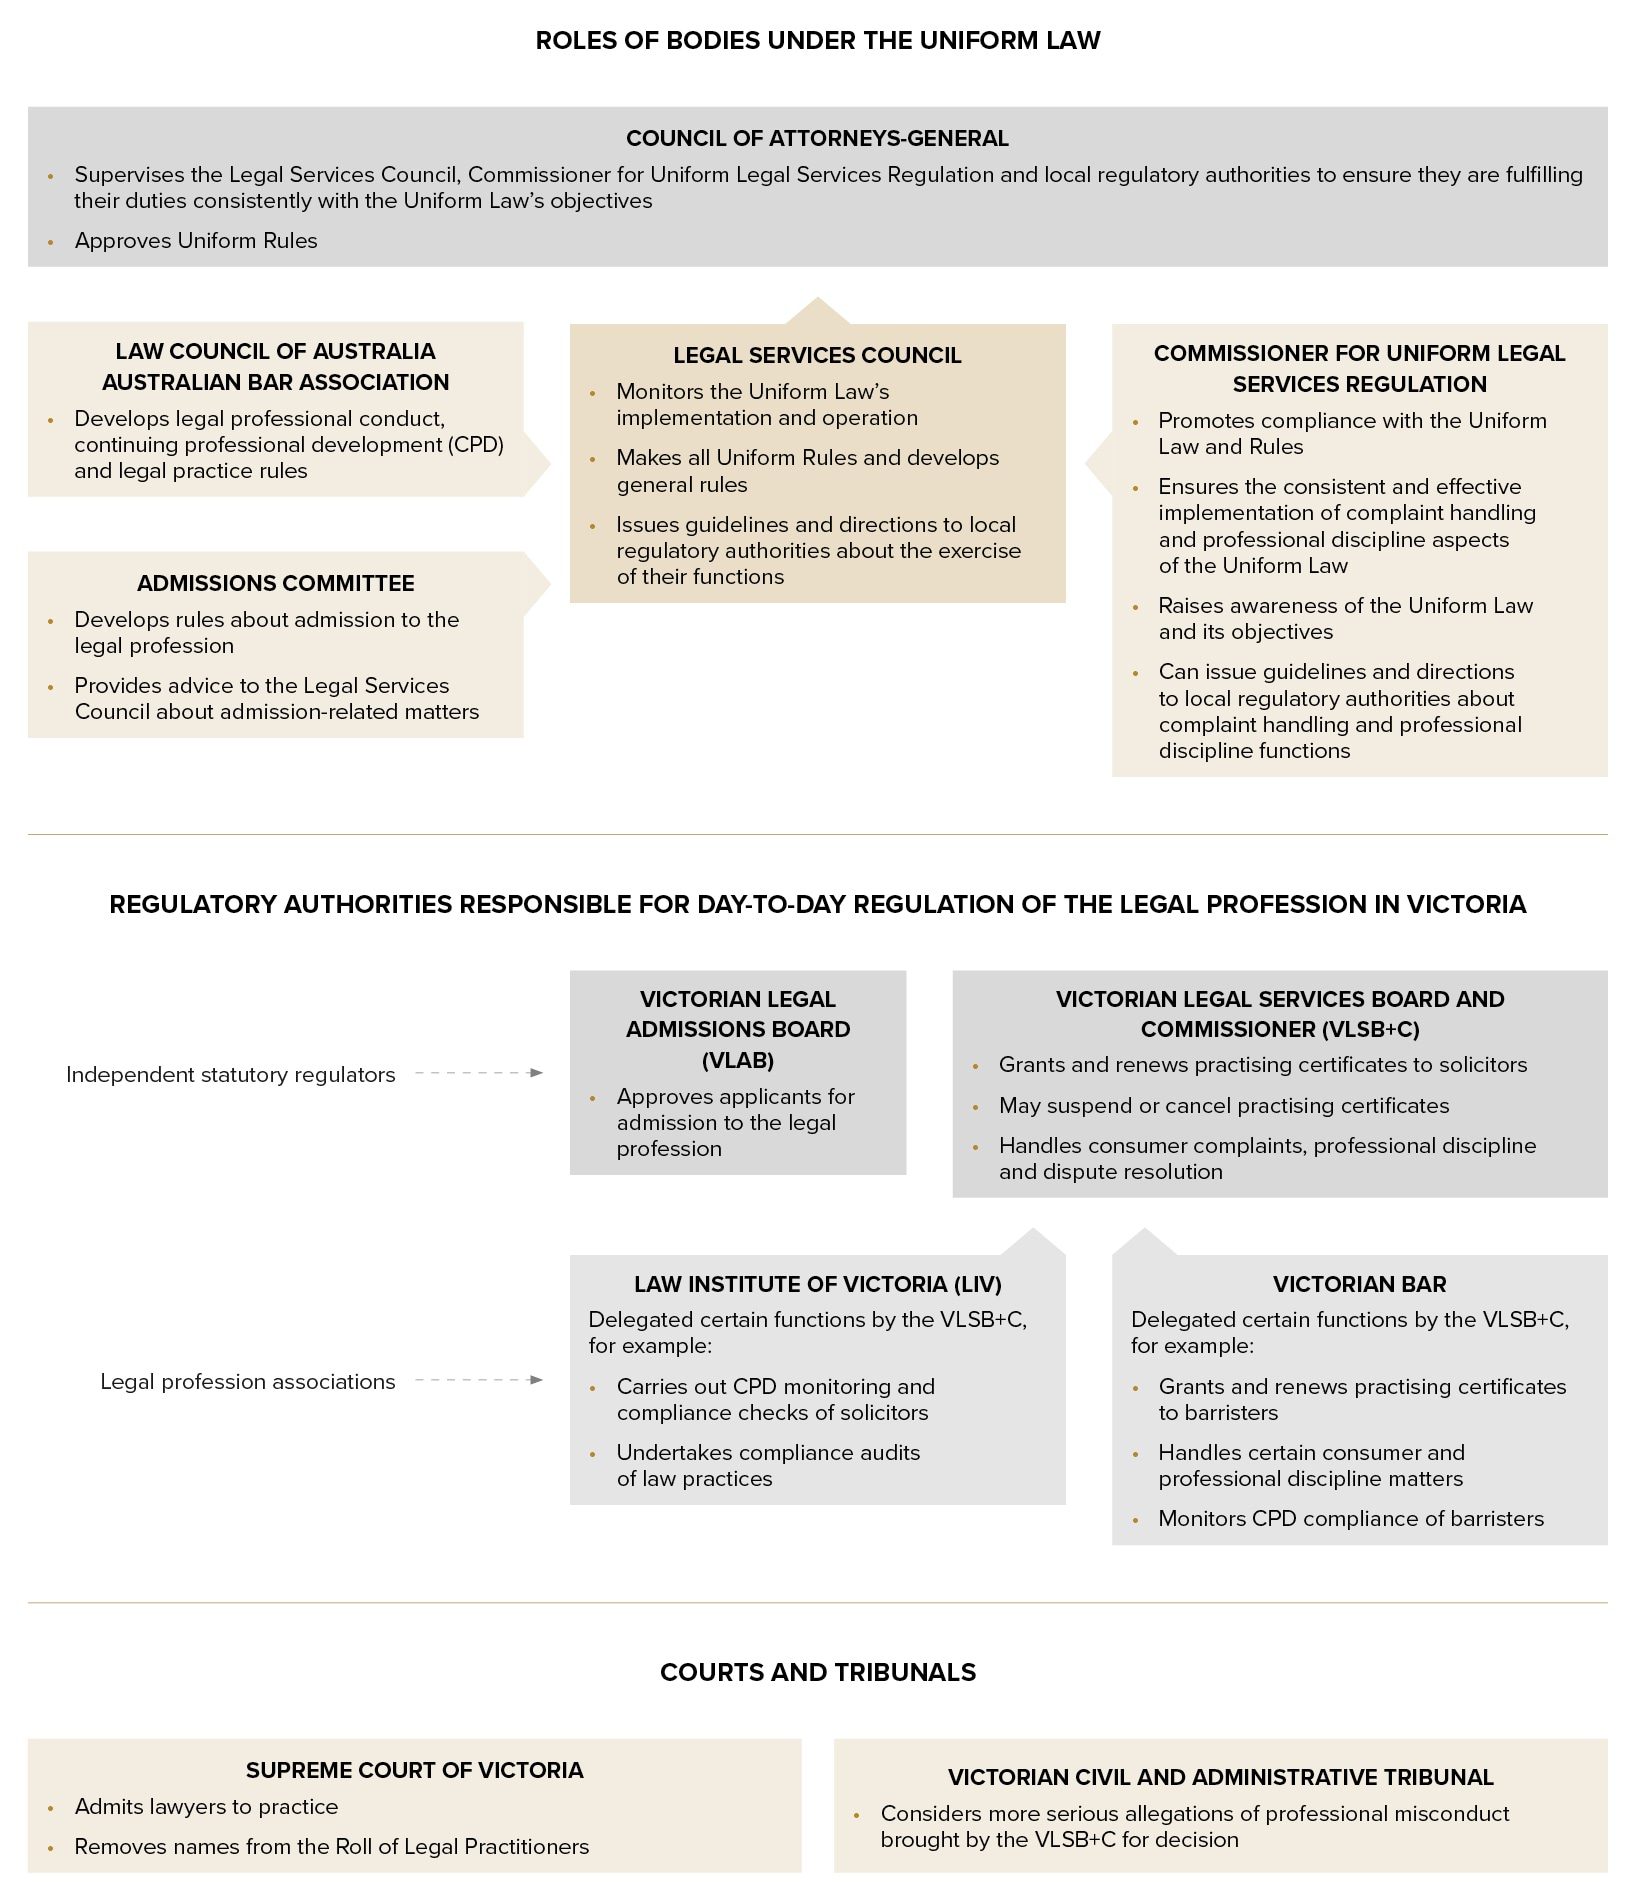 Figure 15.1- Roles of regulators and professional associations under the Uniform Law